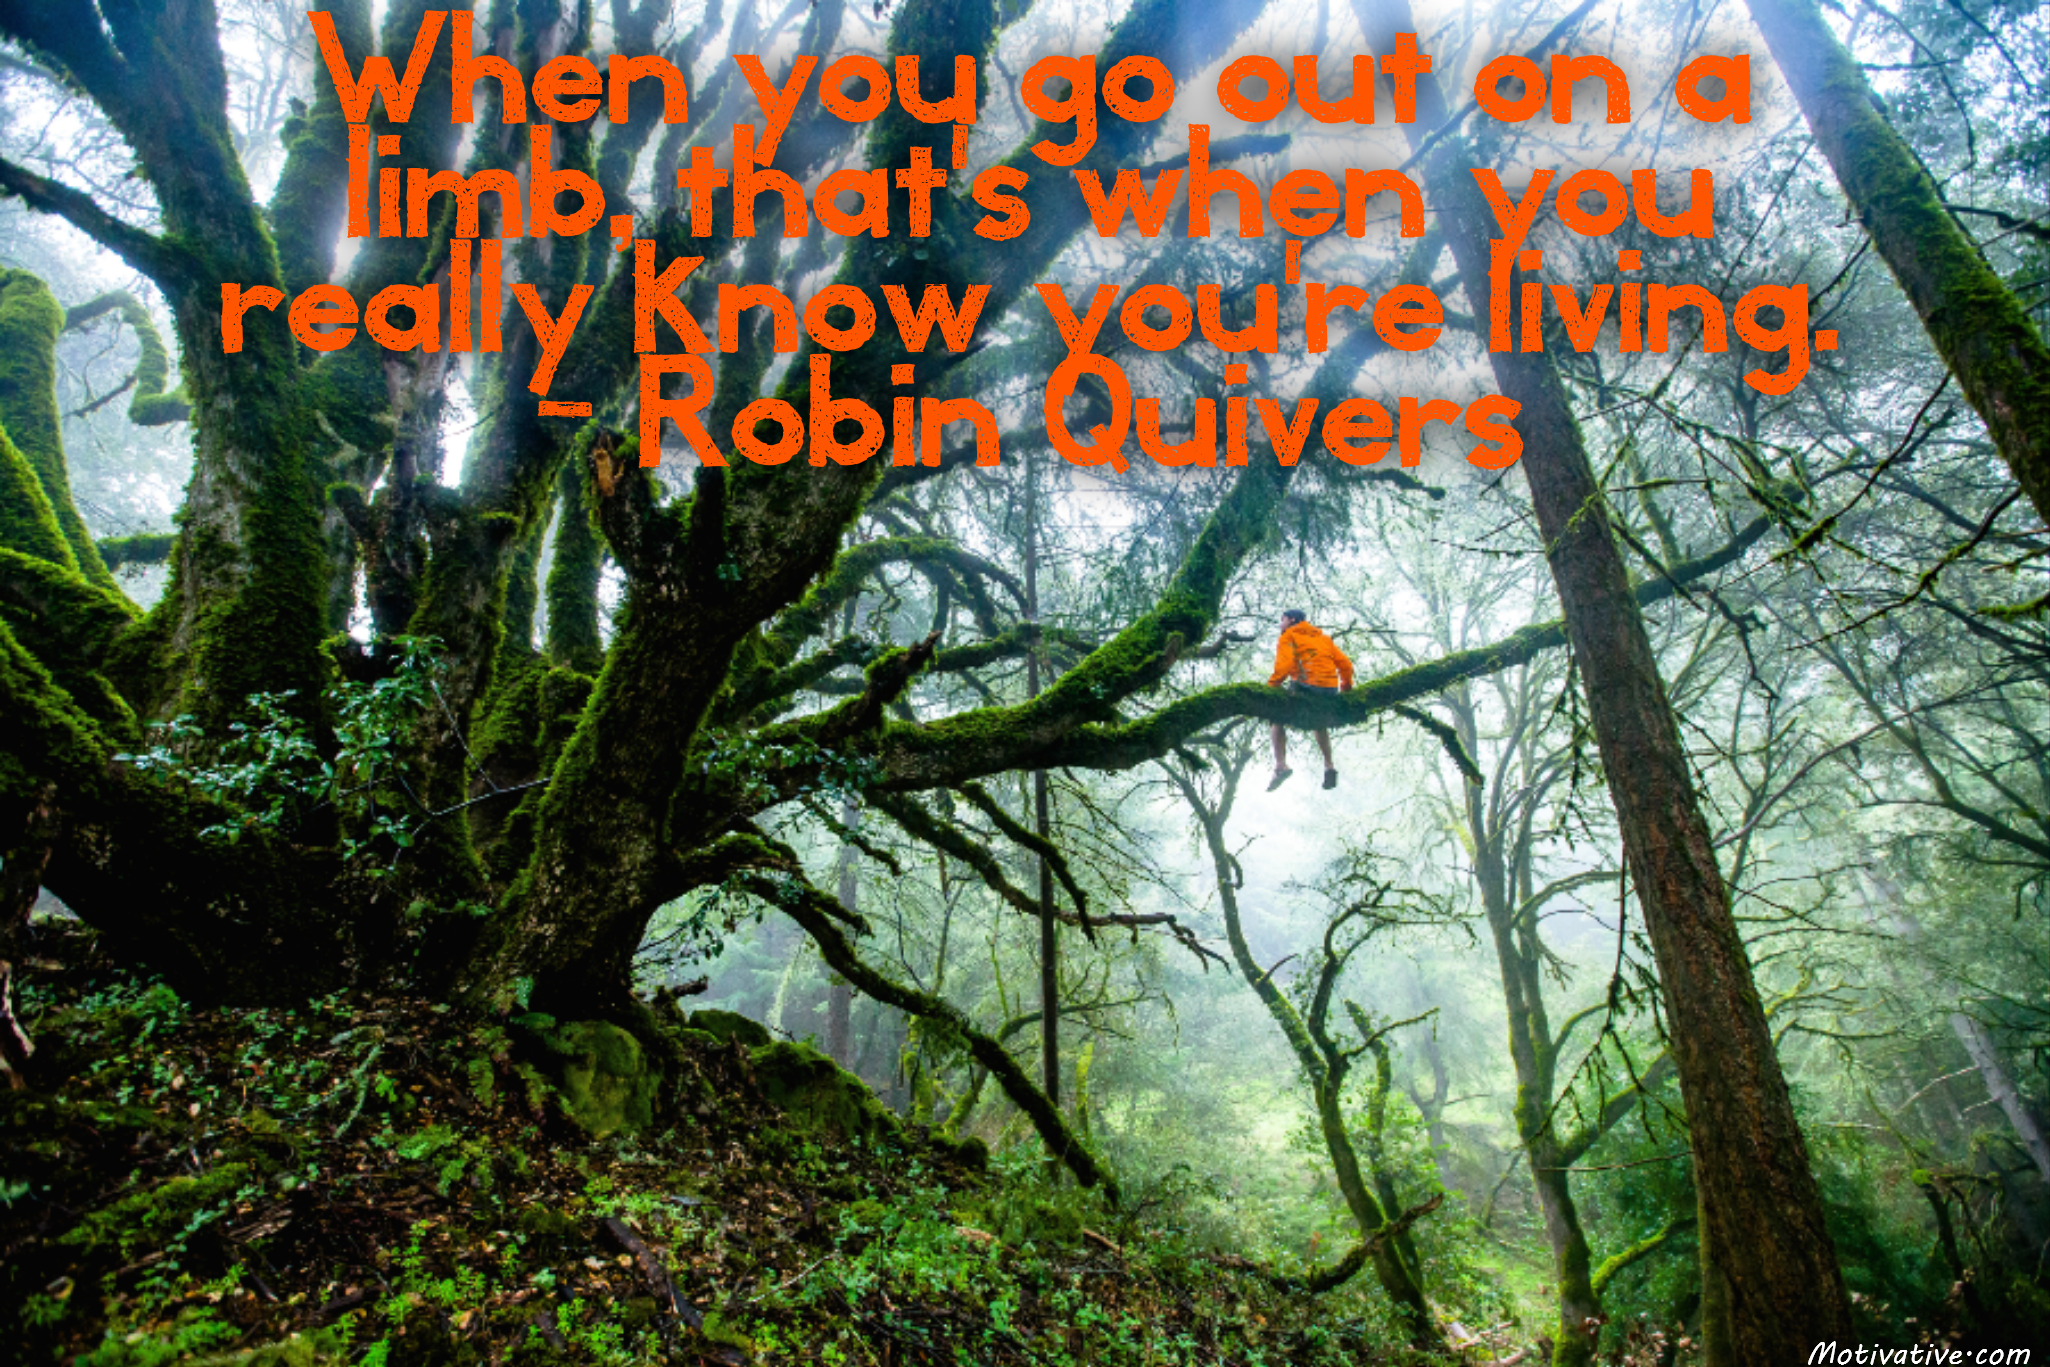 When you go out on a limb, that's when you really know you're living. – Robin Quivers